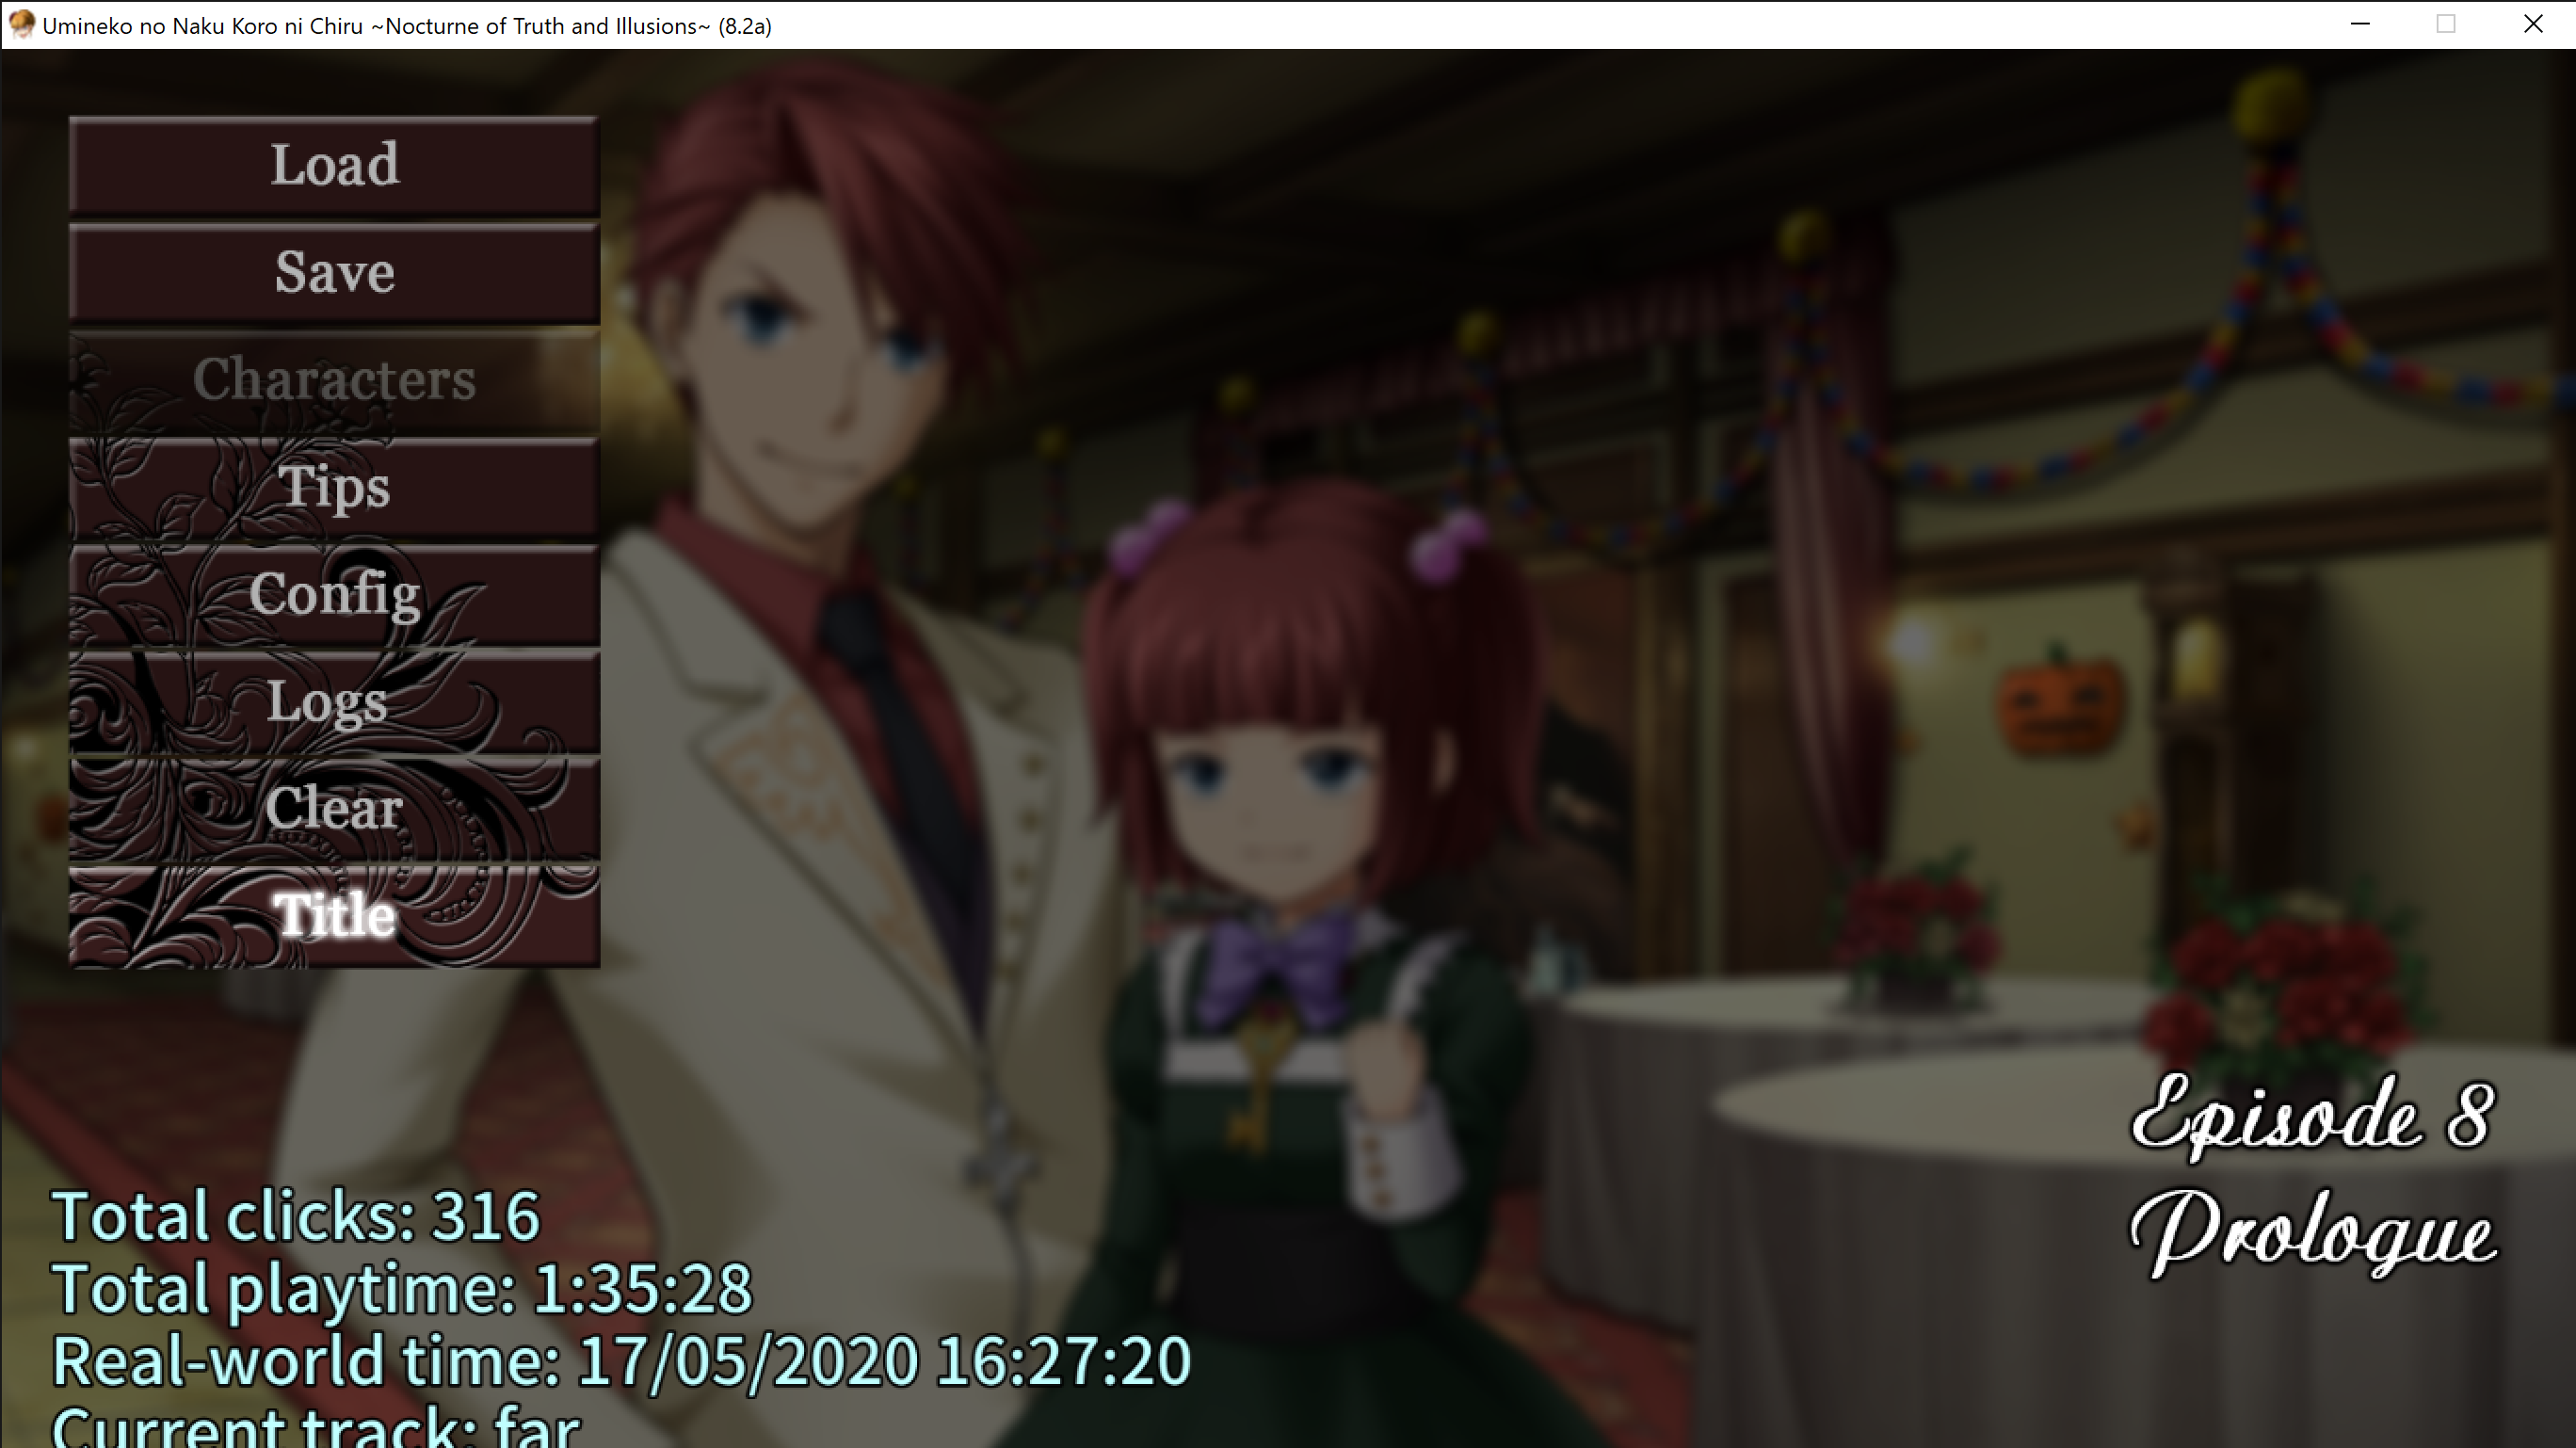 Umineko no Naku Koro ni Chiru ~Nocturne of Truth and Illusions~ (8.2a) 5_17_2020 4_27_20 PM.png